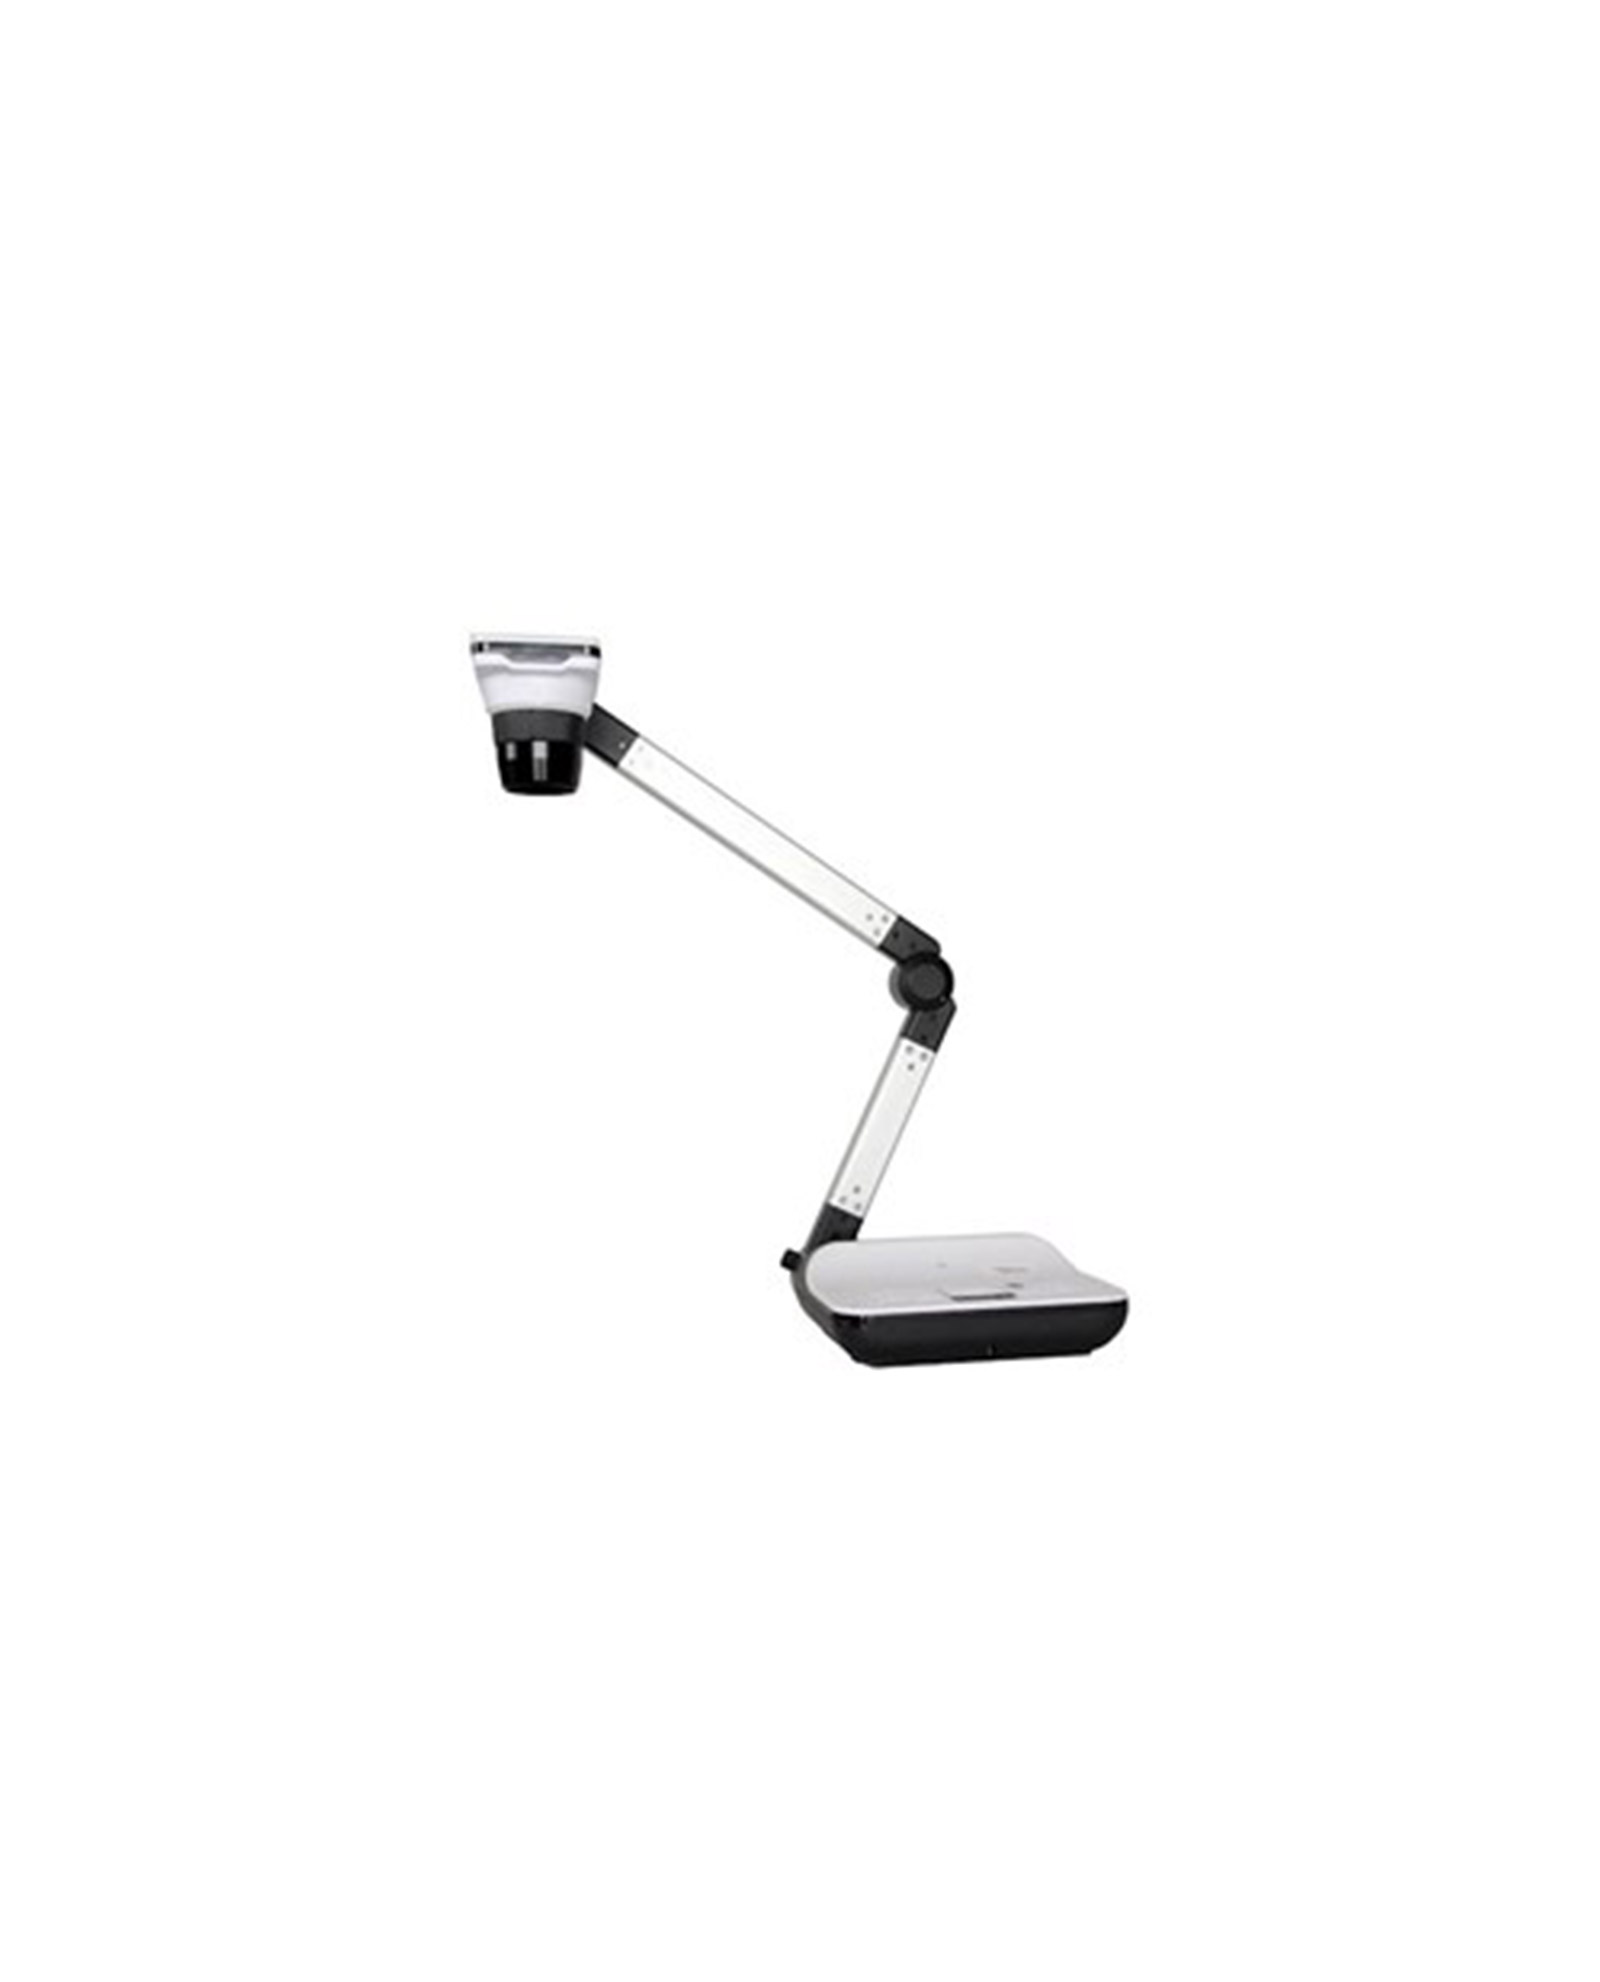 Optoma Dc550 Document Camera, 8mp Fhd With Stand 2